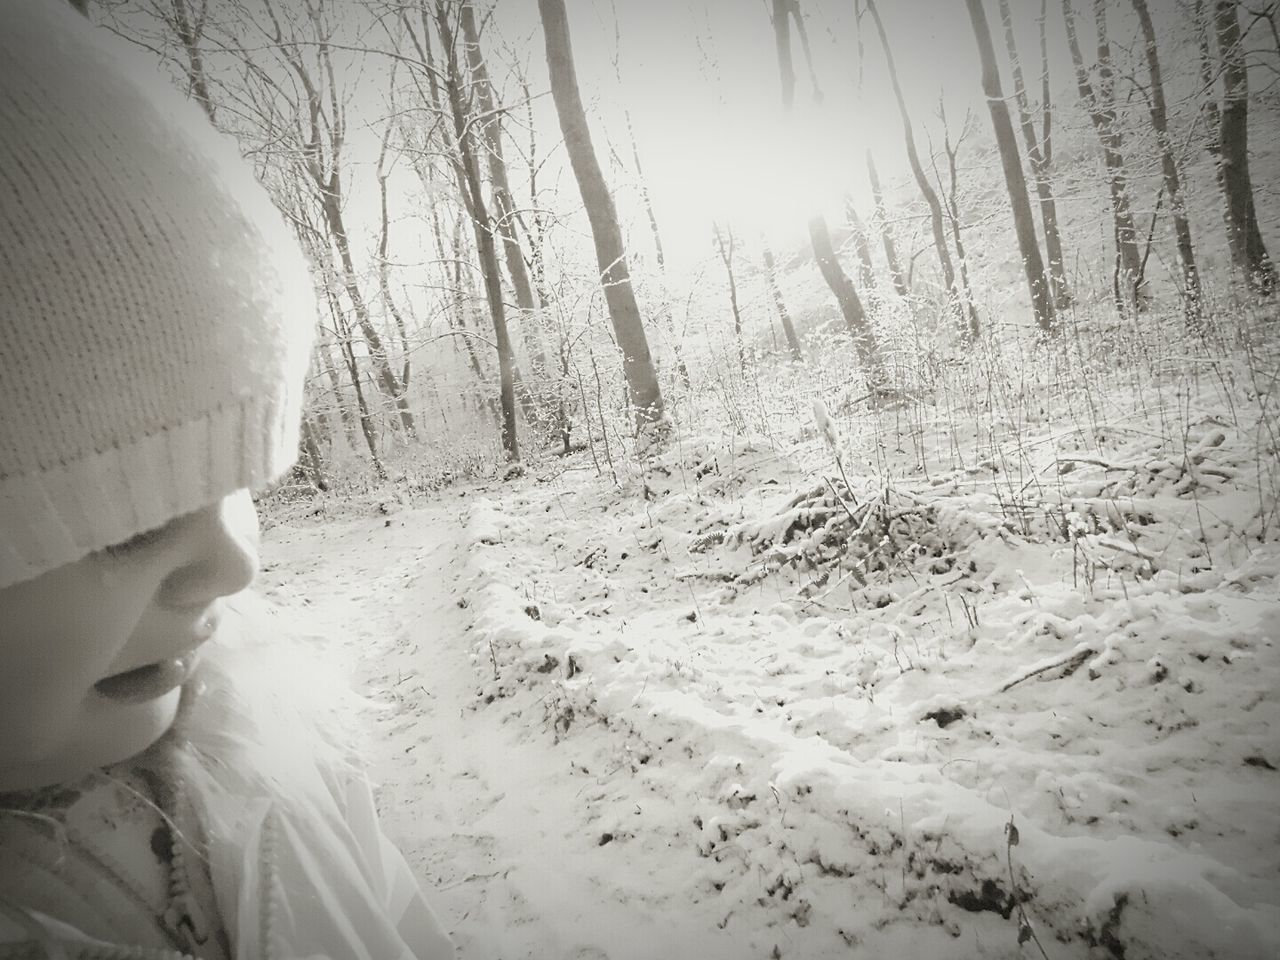 Close-Up Of Girl In Snow Covered Forest